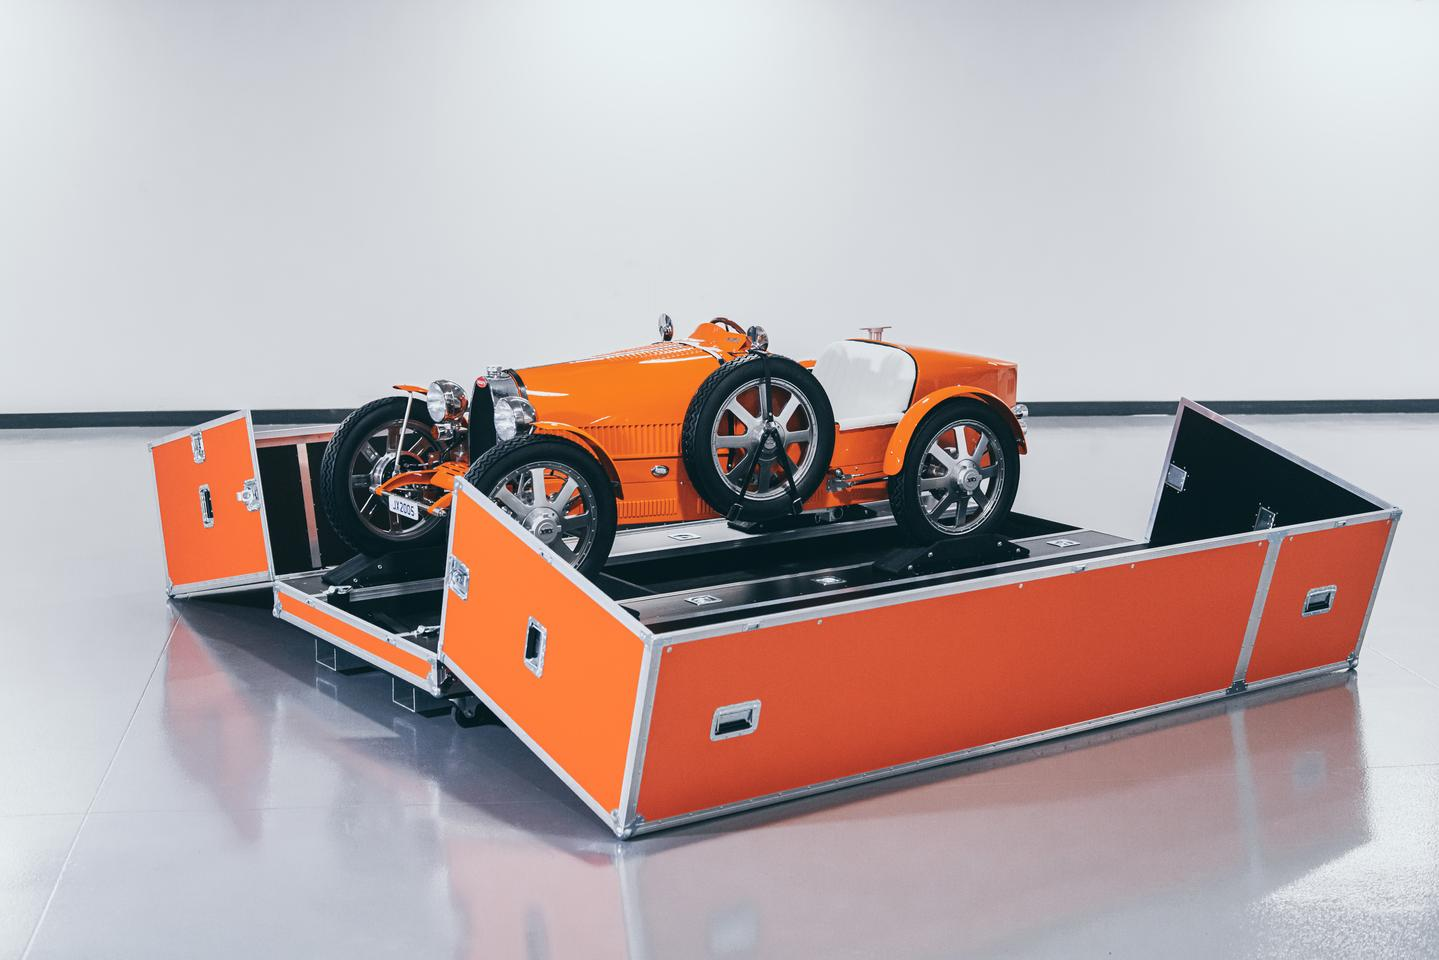 Bugatti has only produced 500 of its Baby II roadsters